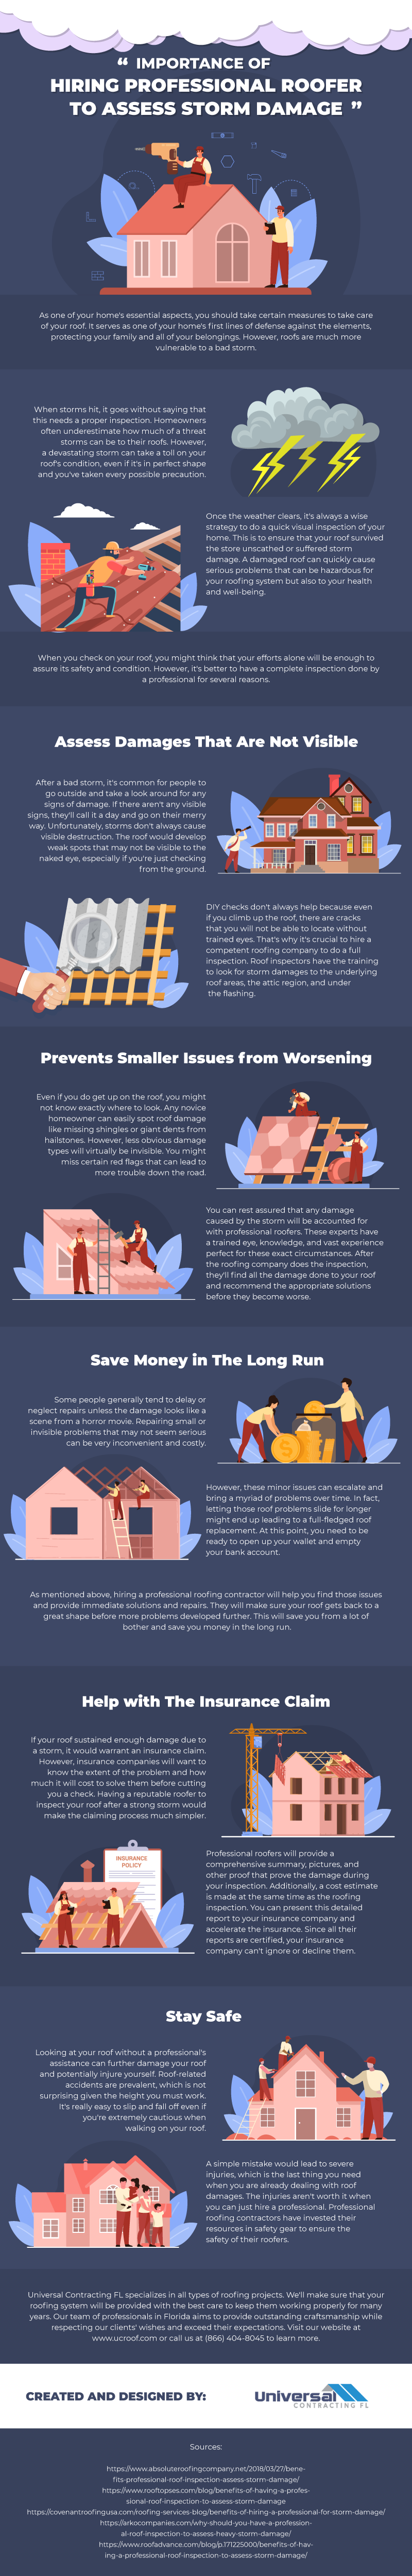 Importance of Hiring Professional Roofer to Assess Storm Damage - Infographic